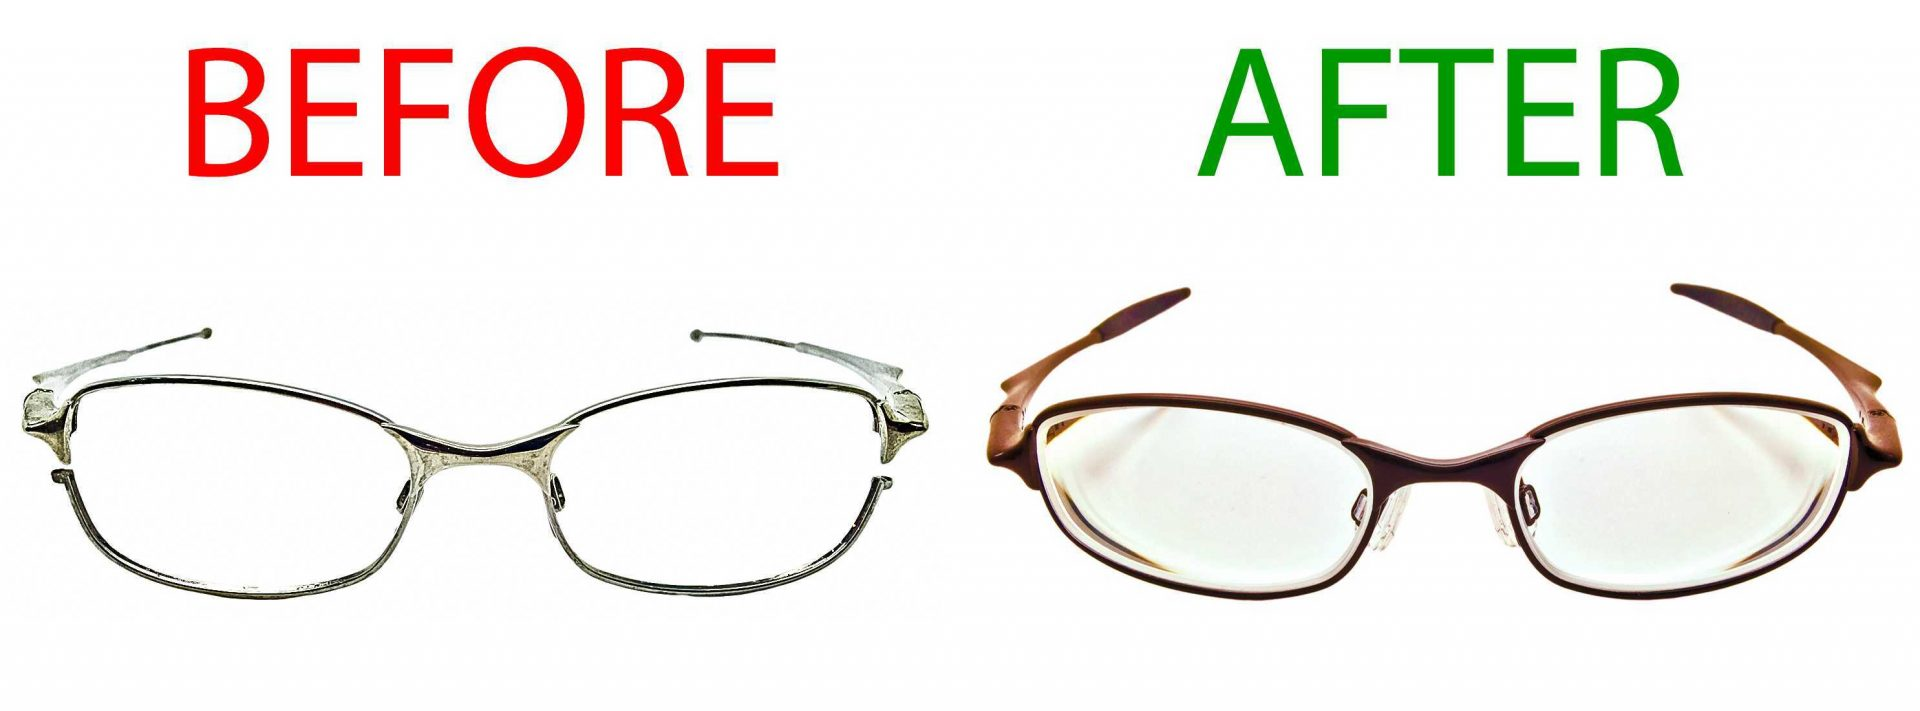 Spectacles Repaint, examples before and after